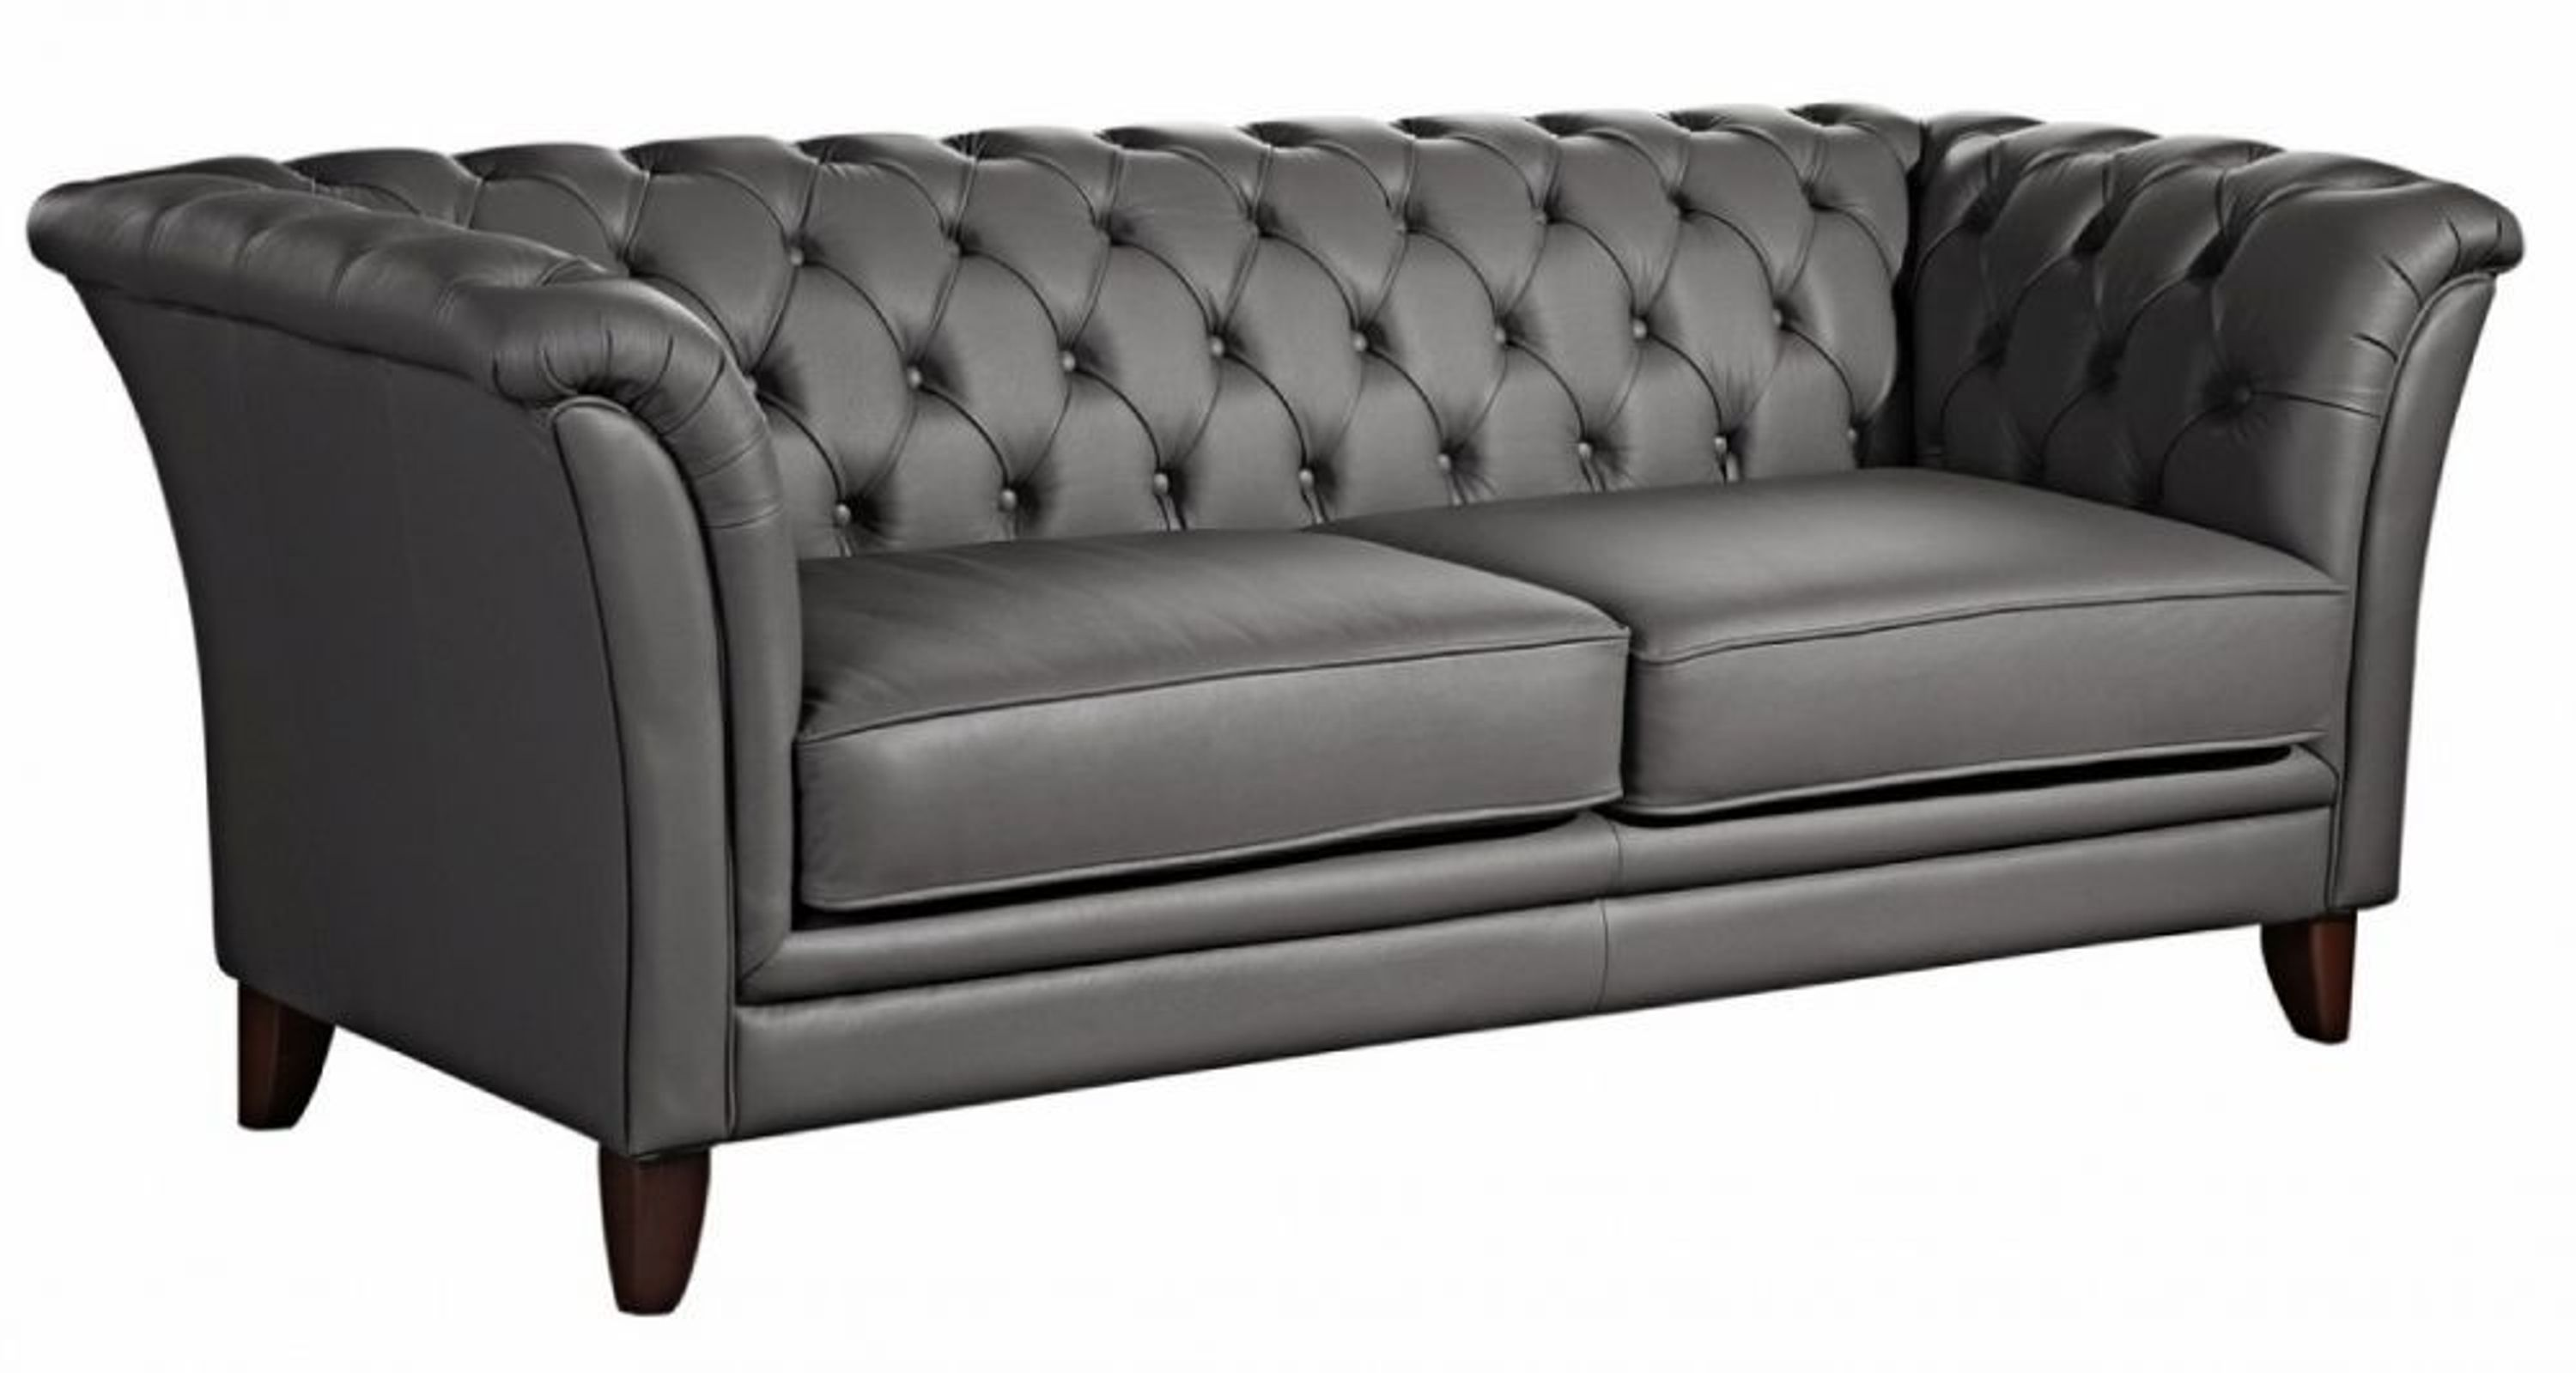 sofa 2 sitz norfolk leder graphit kaufen bei. Black Bedroom Furniture Sets. Home Design Ideas